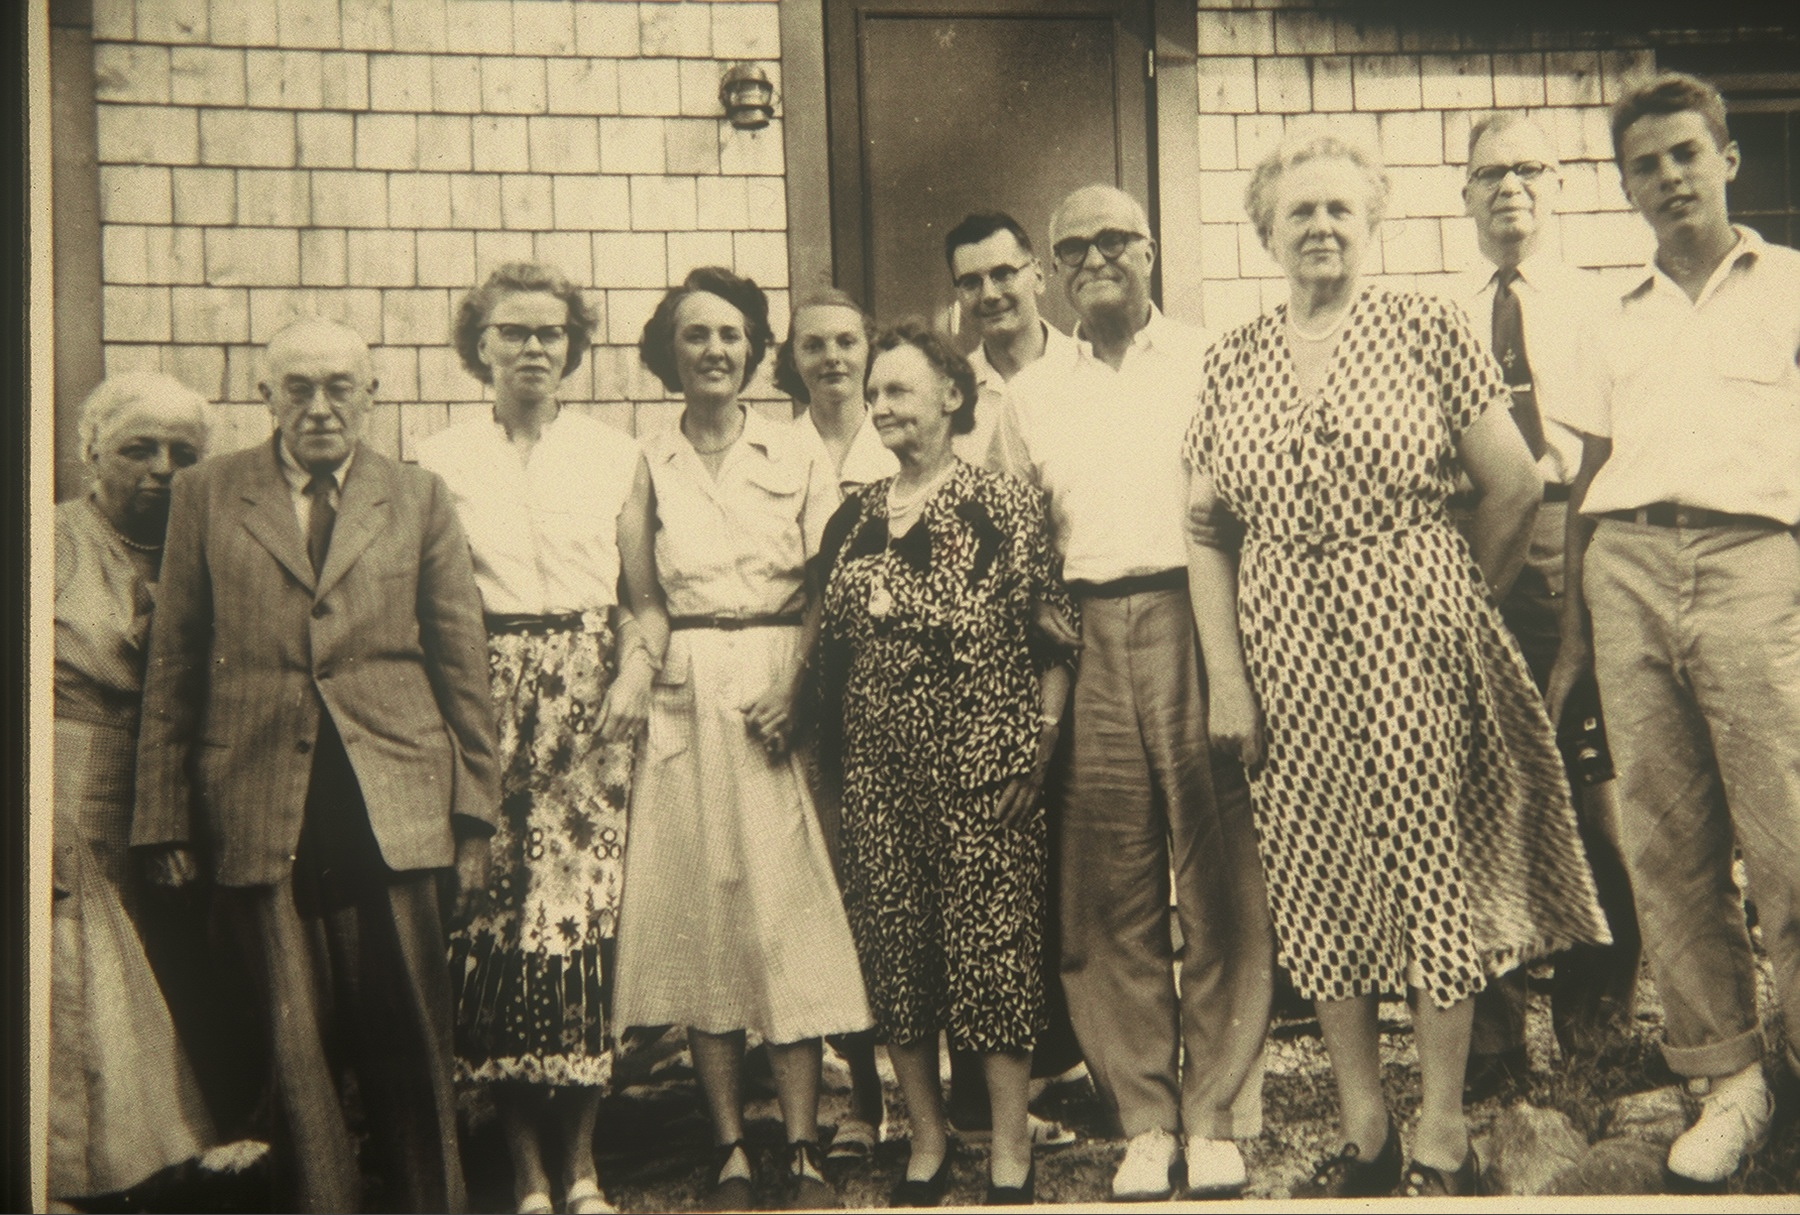 A gathering of Wilders in Blue Hill circa 1949: left to right, Margaret Todd & Charles Todd, Elaine Wilder LeClair, Catharine K. Wilder (Mrs. Amos N.) Catharine Wilder, Emma McCully, Ray LeClair, Thornton Wilder, Gertrude & Max Wilder and Tappan Wilder